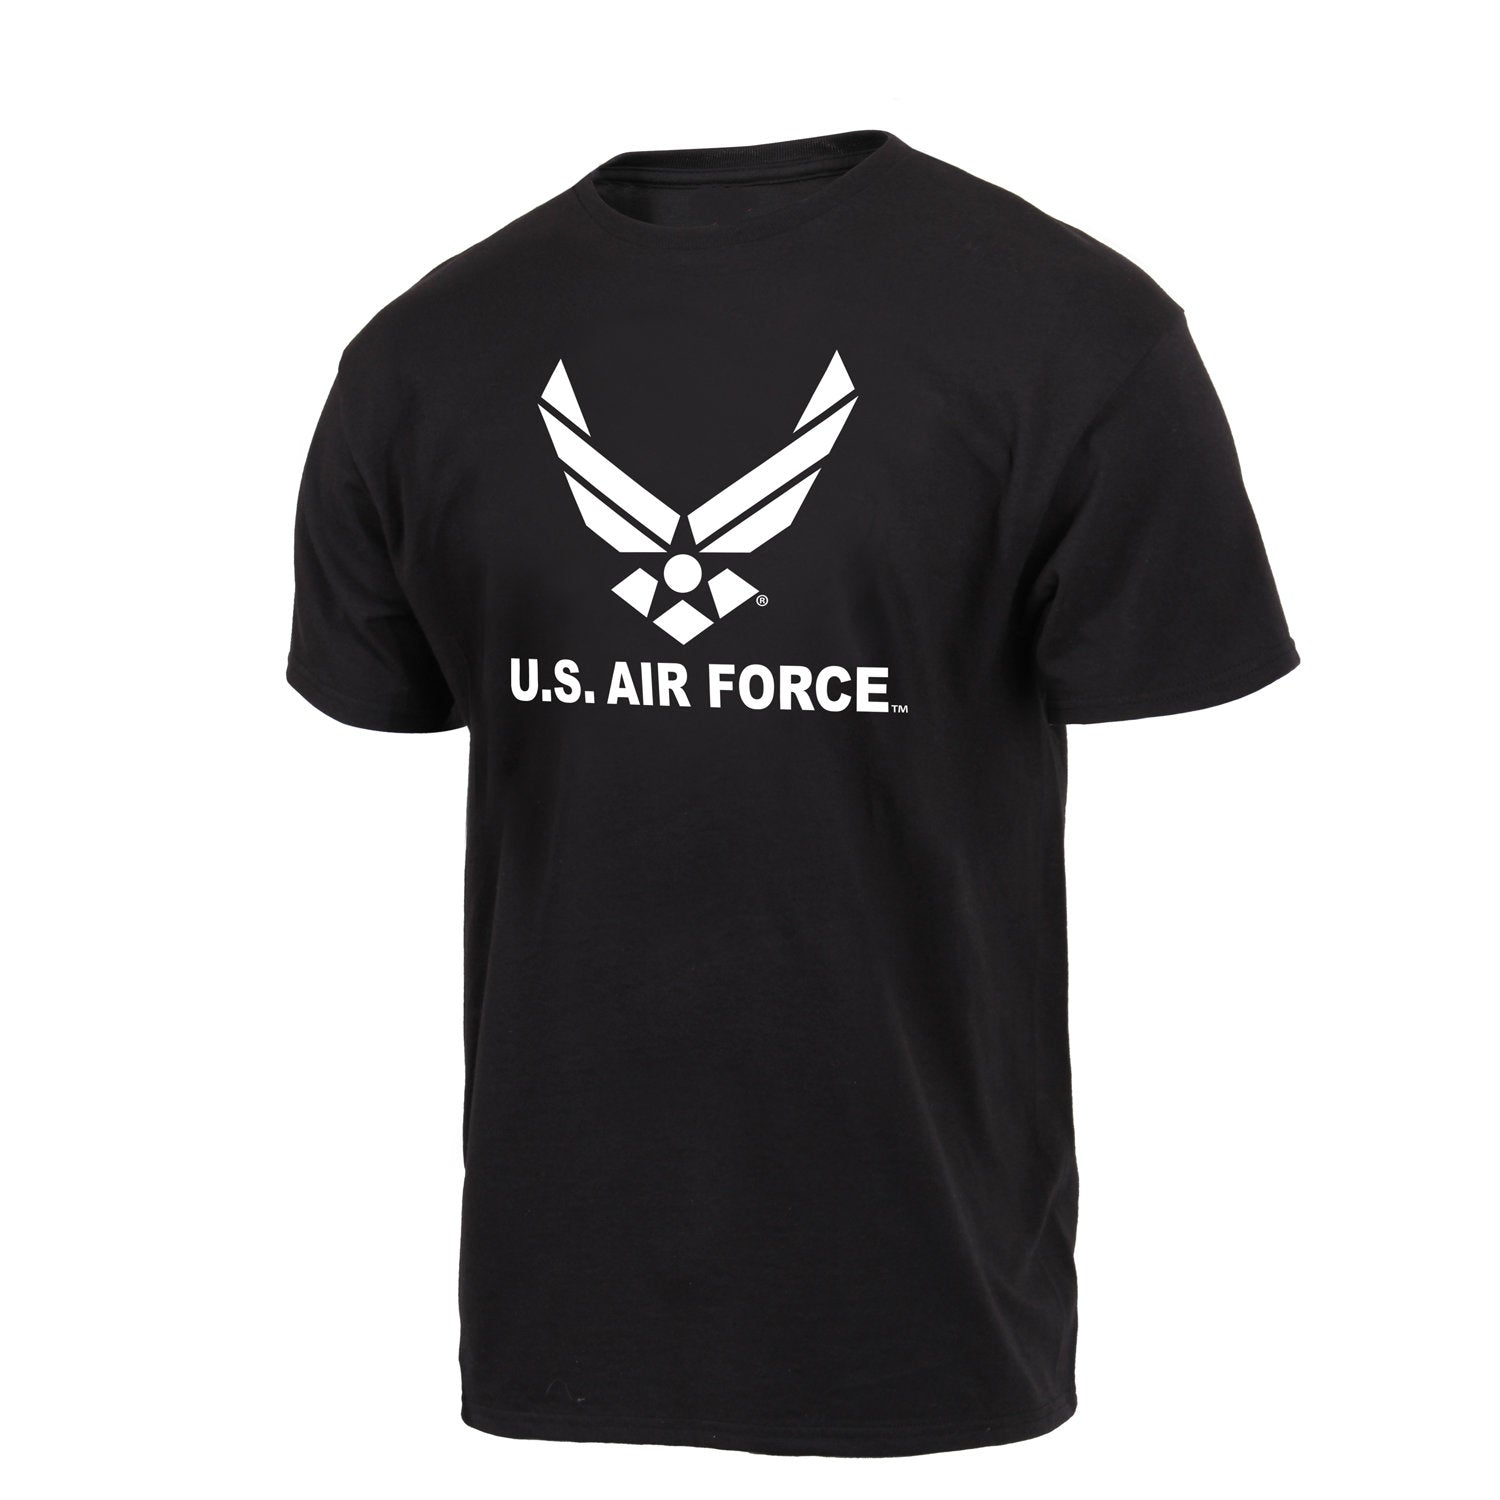 US Air Force Emblem T-Shirt Black